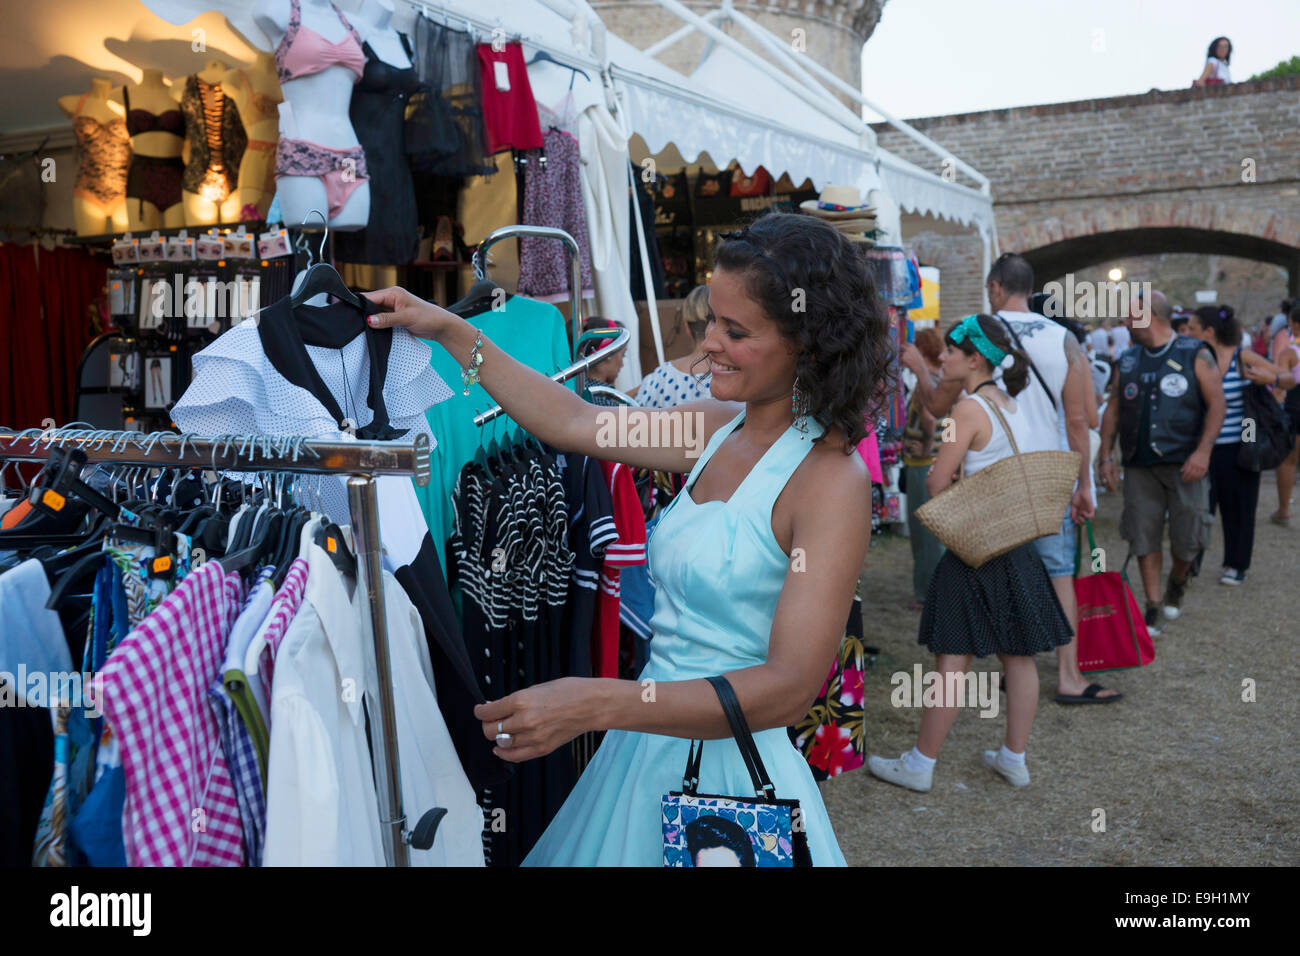 Woman shopping at the Summer Jamboree Rock'n'Roll Festival, historic center, Senigallia, Province of Ancona, - Stock Image